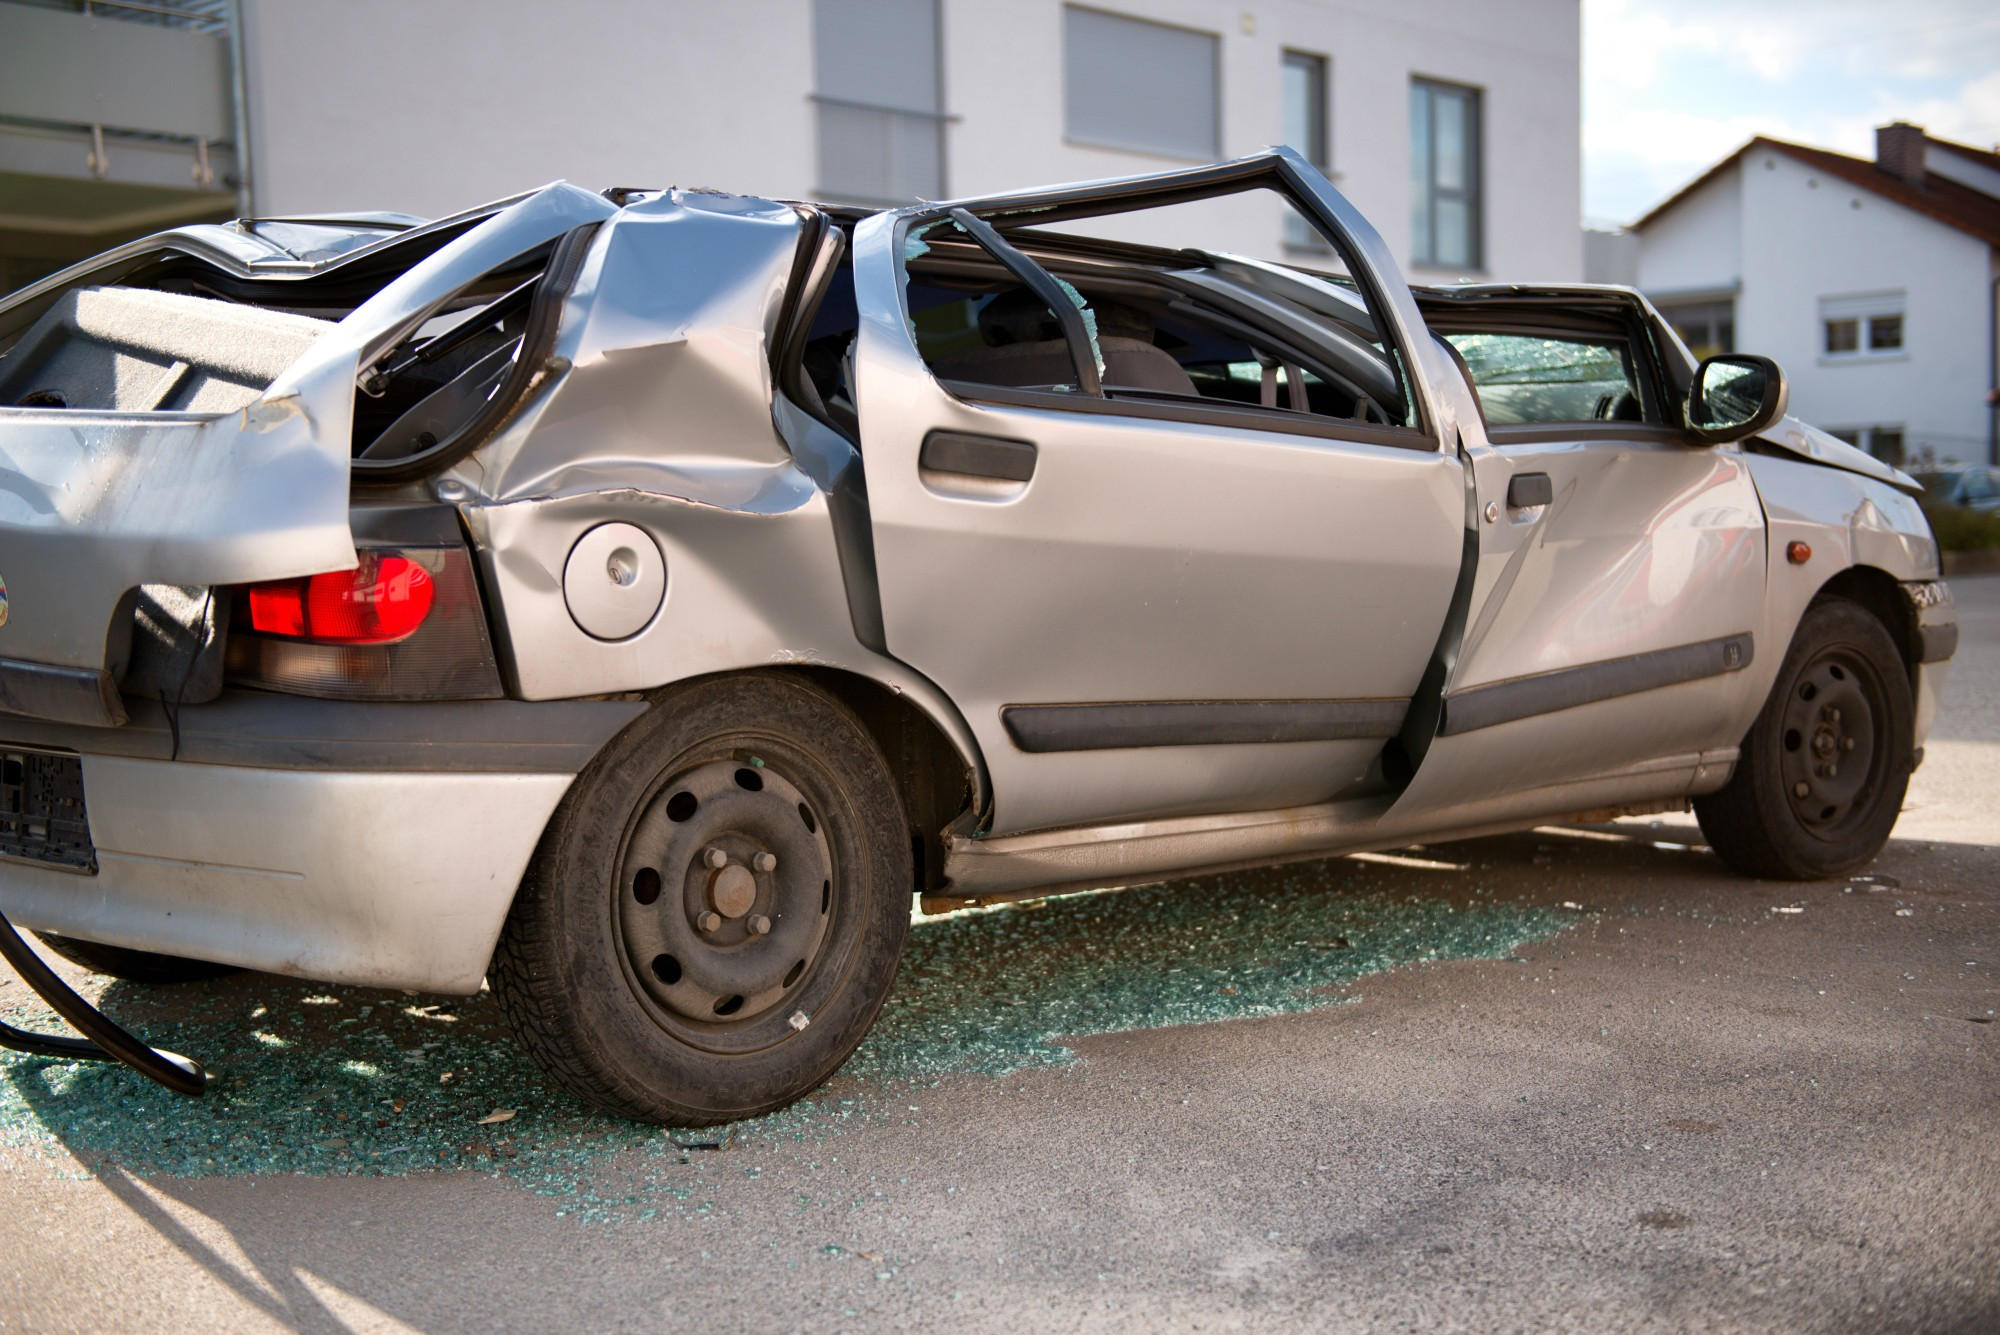 How to Sell a Totaled Car for Cash